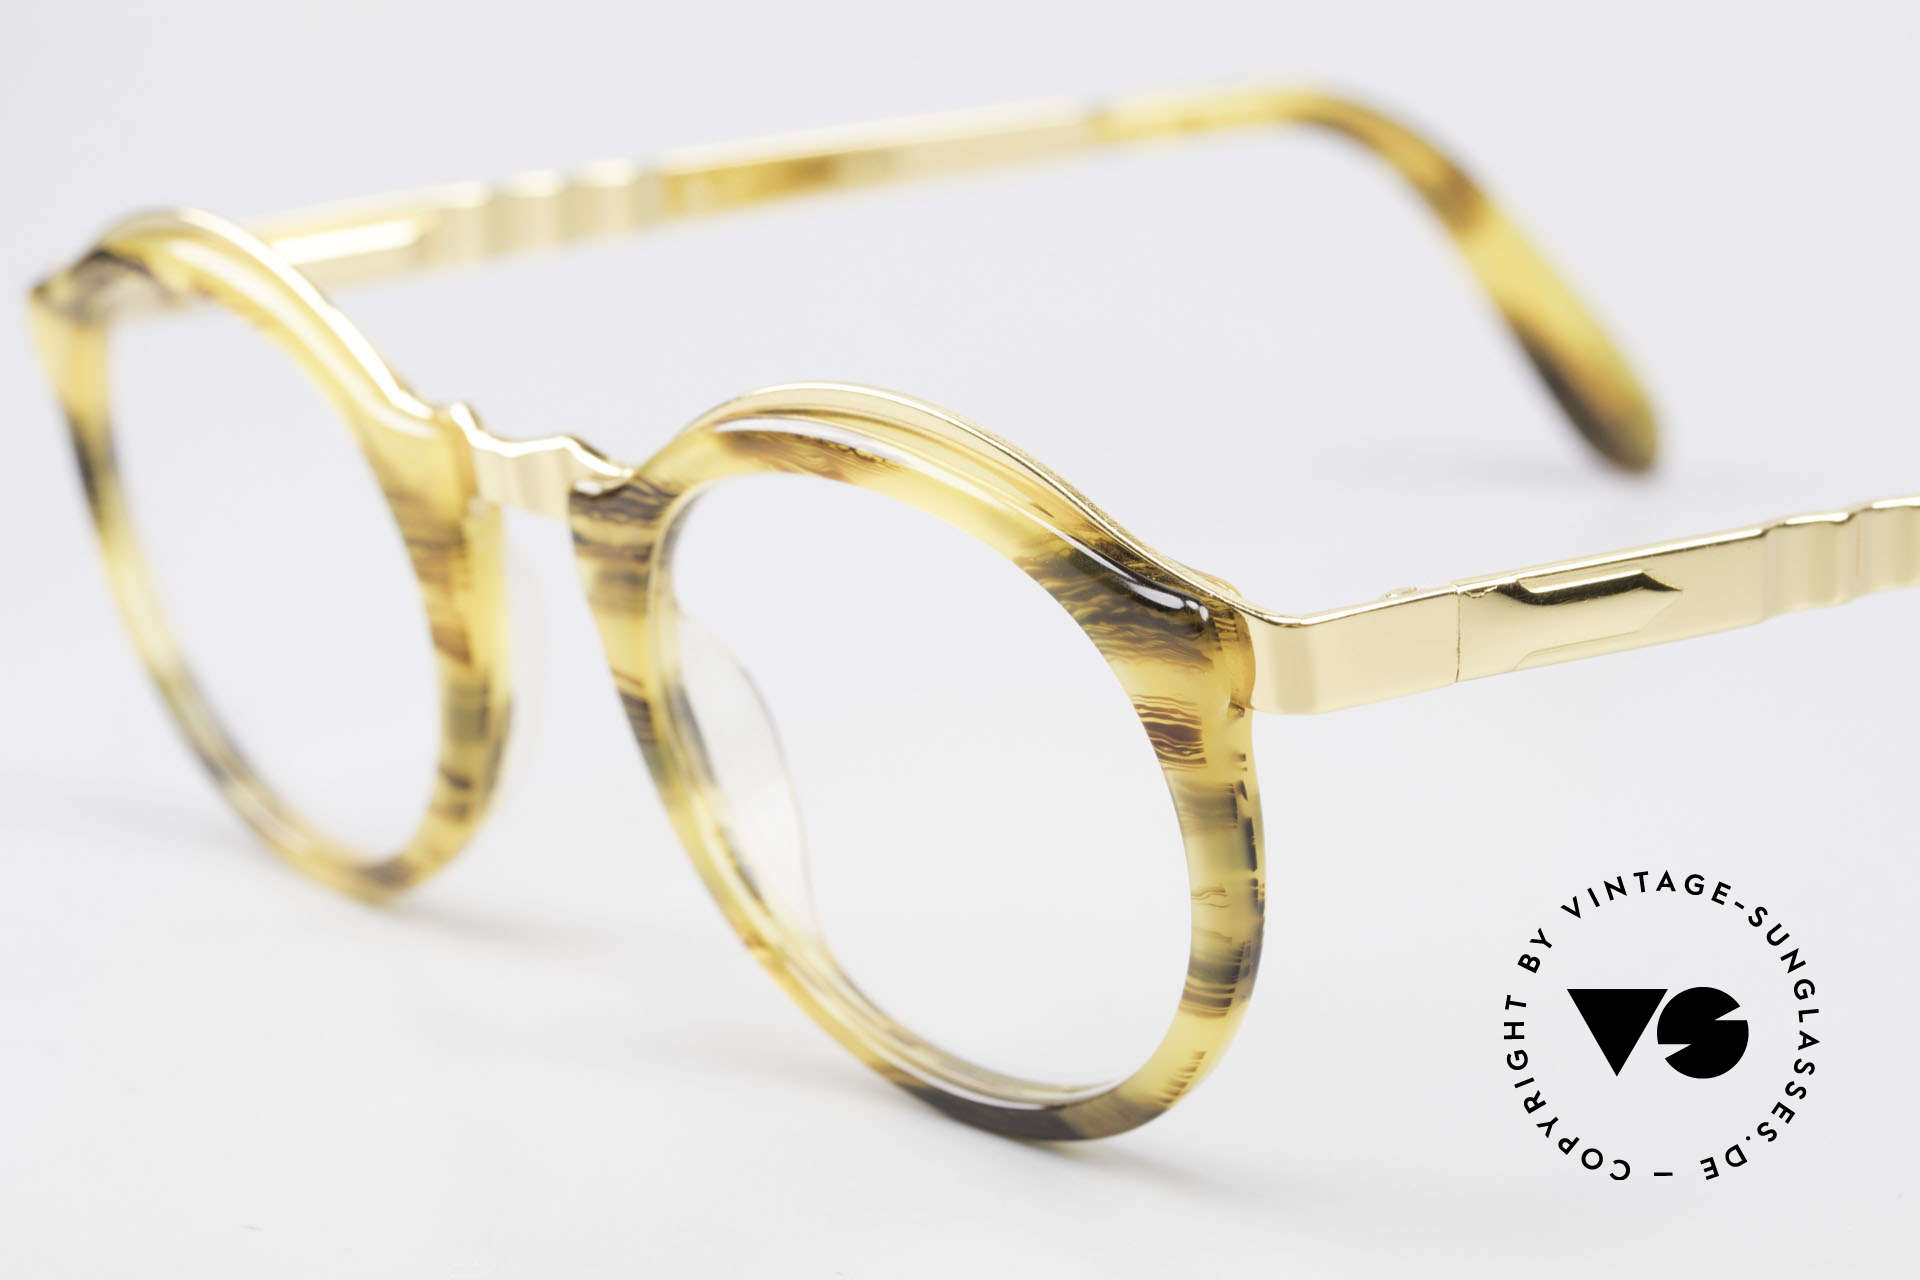 Persol Ivy Gold Plated Panto Glasses, 18kt GOLD-PLATED metal frame, S size 45-20, Made for Men and Women